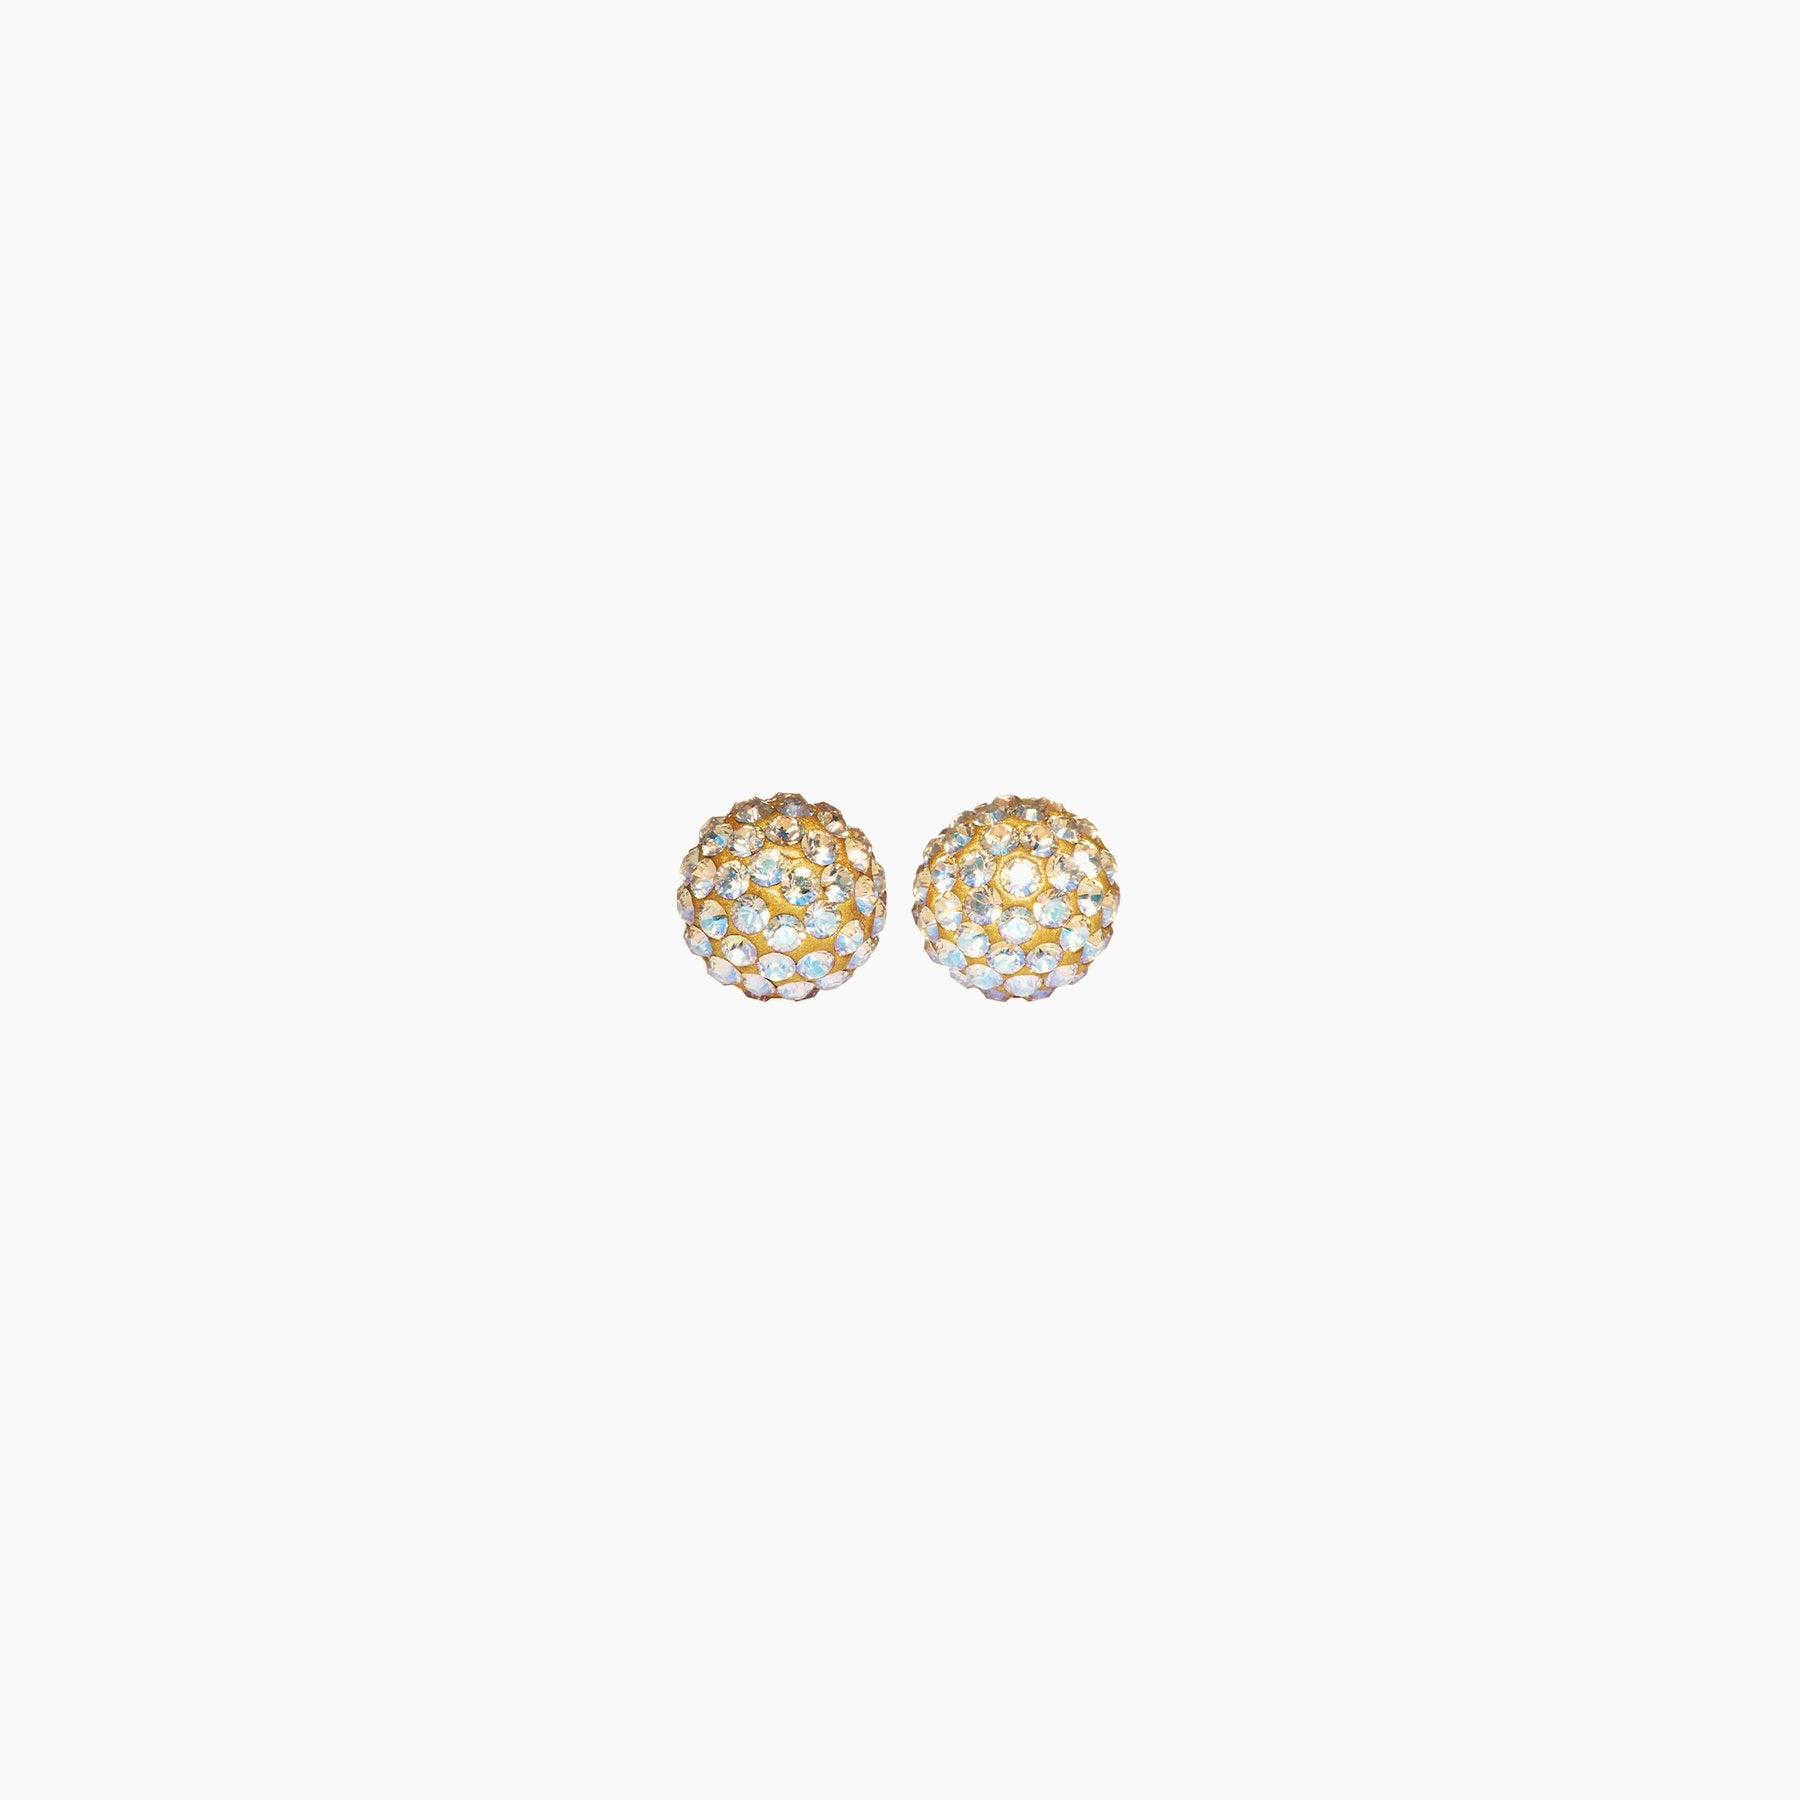 H&B Sparkle Ball™ Stud Earrings - Shimmer LE